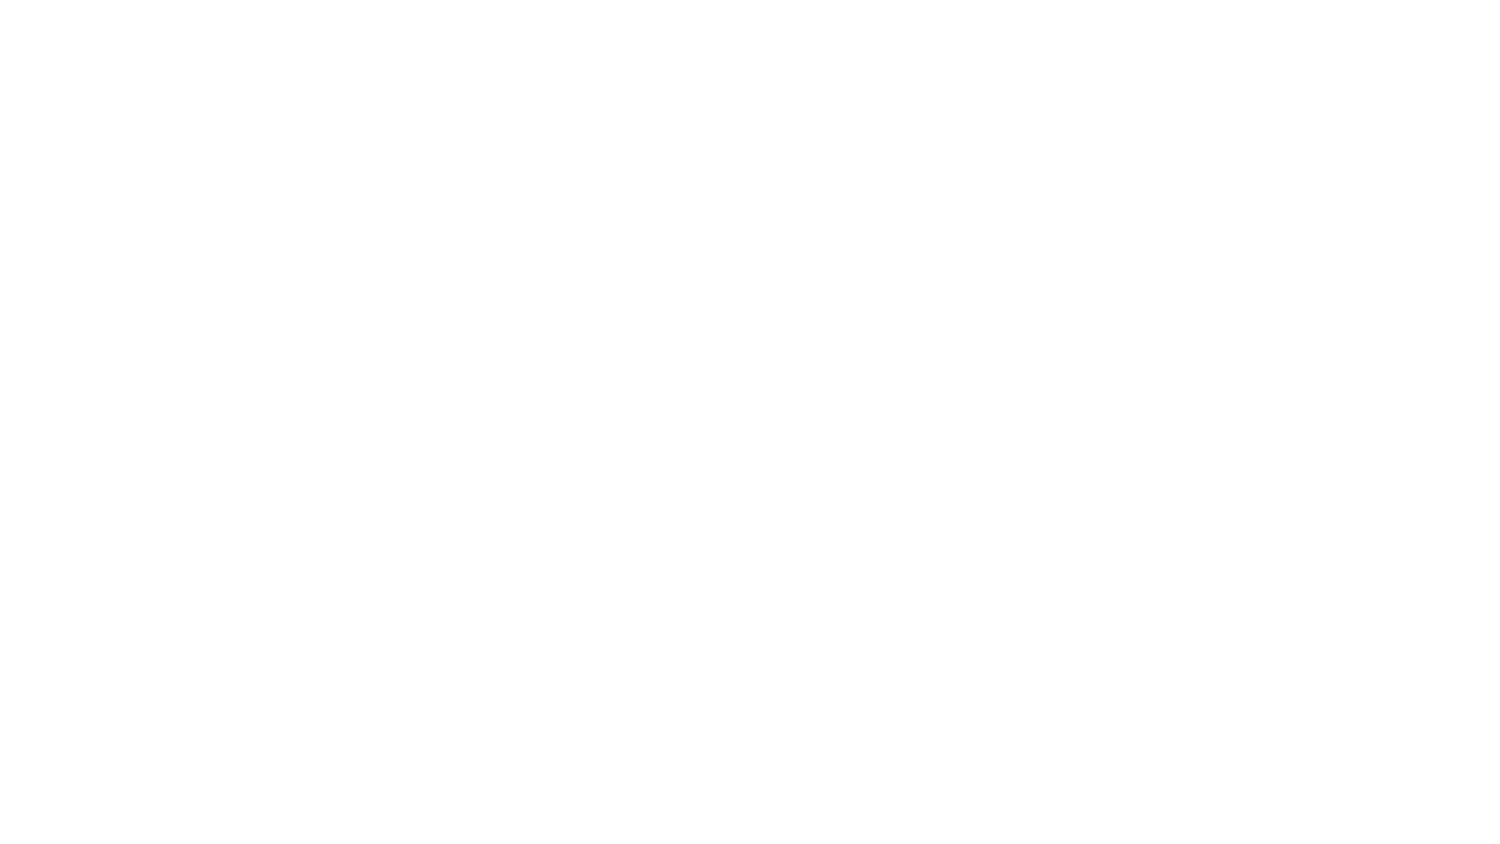 CONTEND